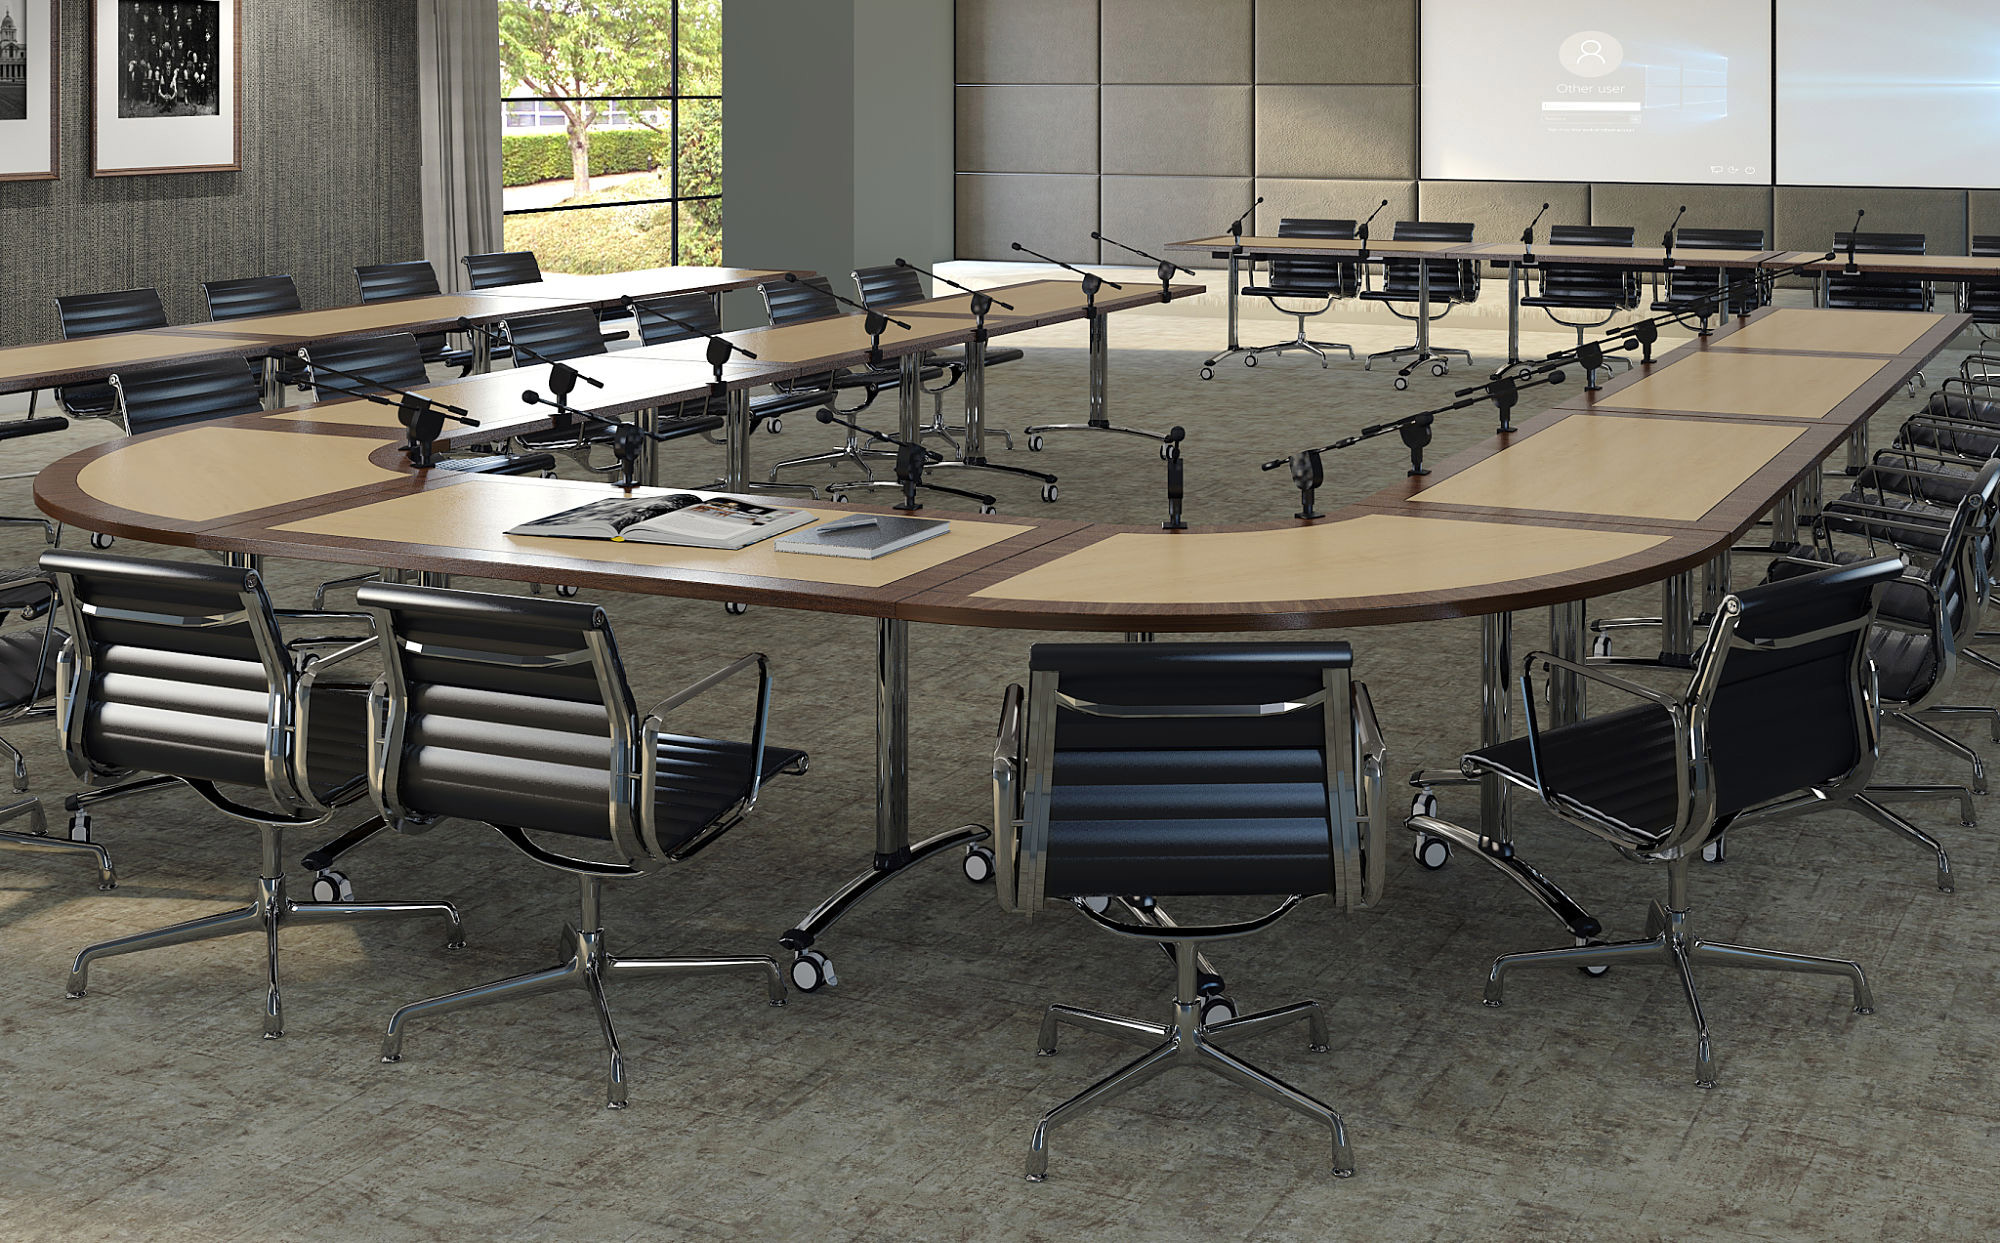 GEMINI TILT-TOP TABLES FROM EBORCRAFT GIVE CONFERENCE FURNITURE MORE FLEXIBILITY